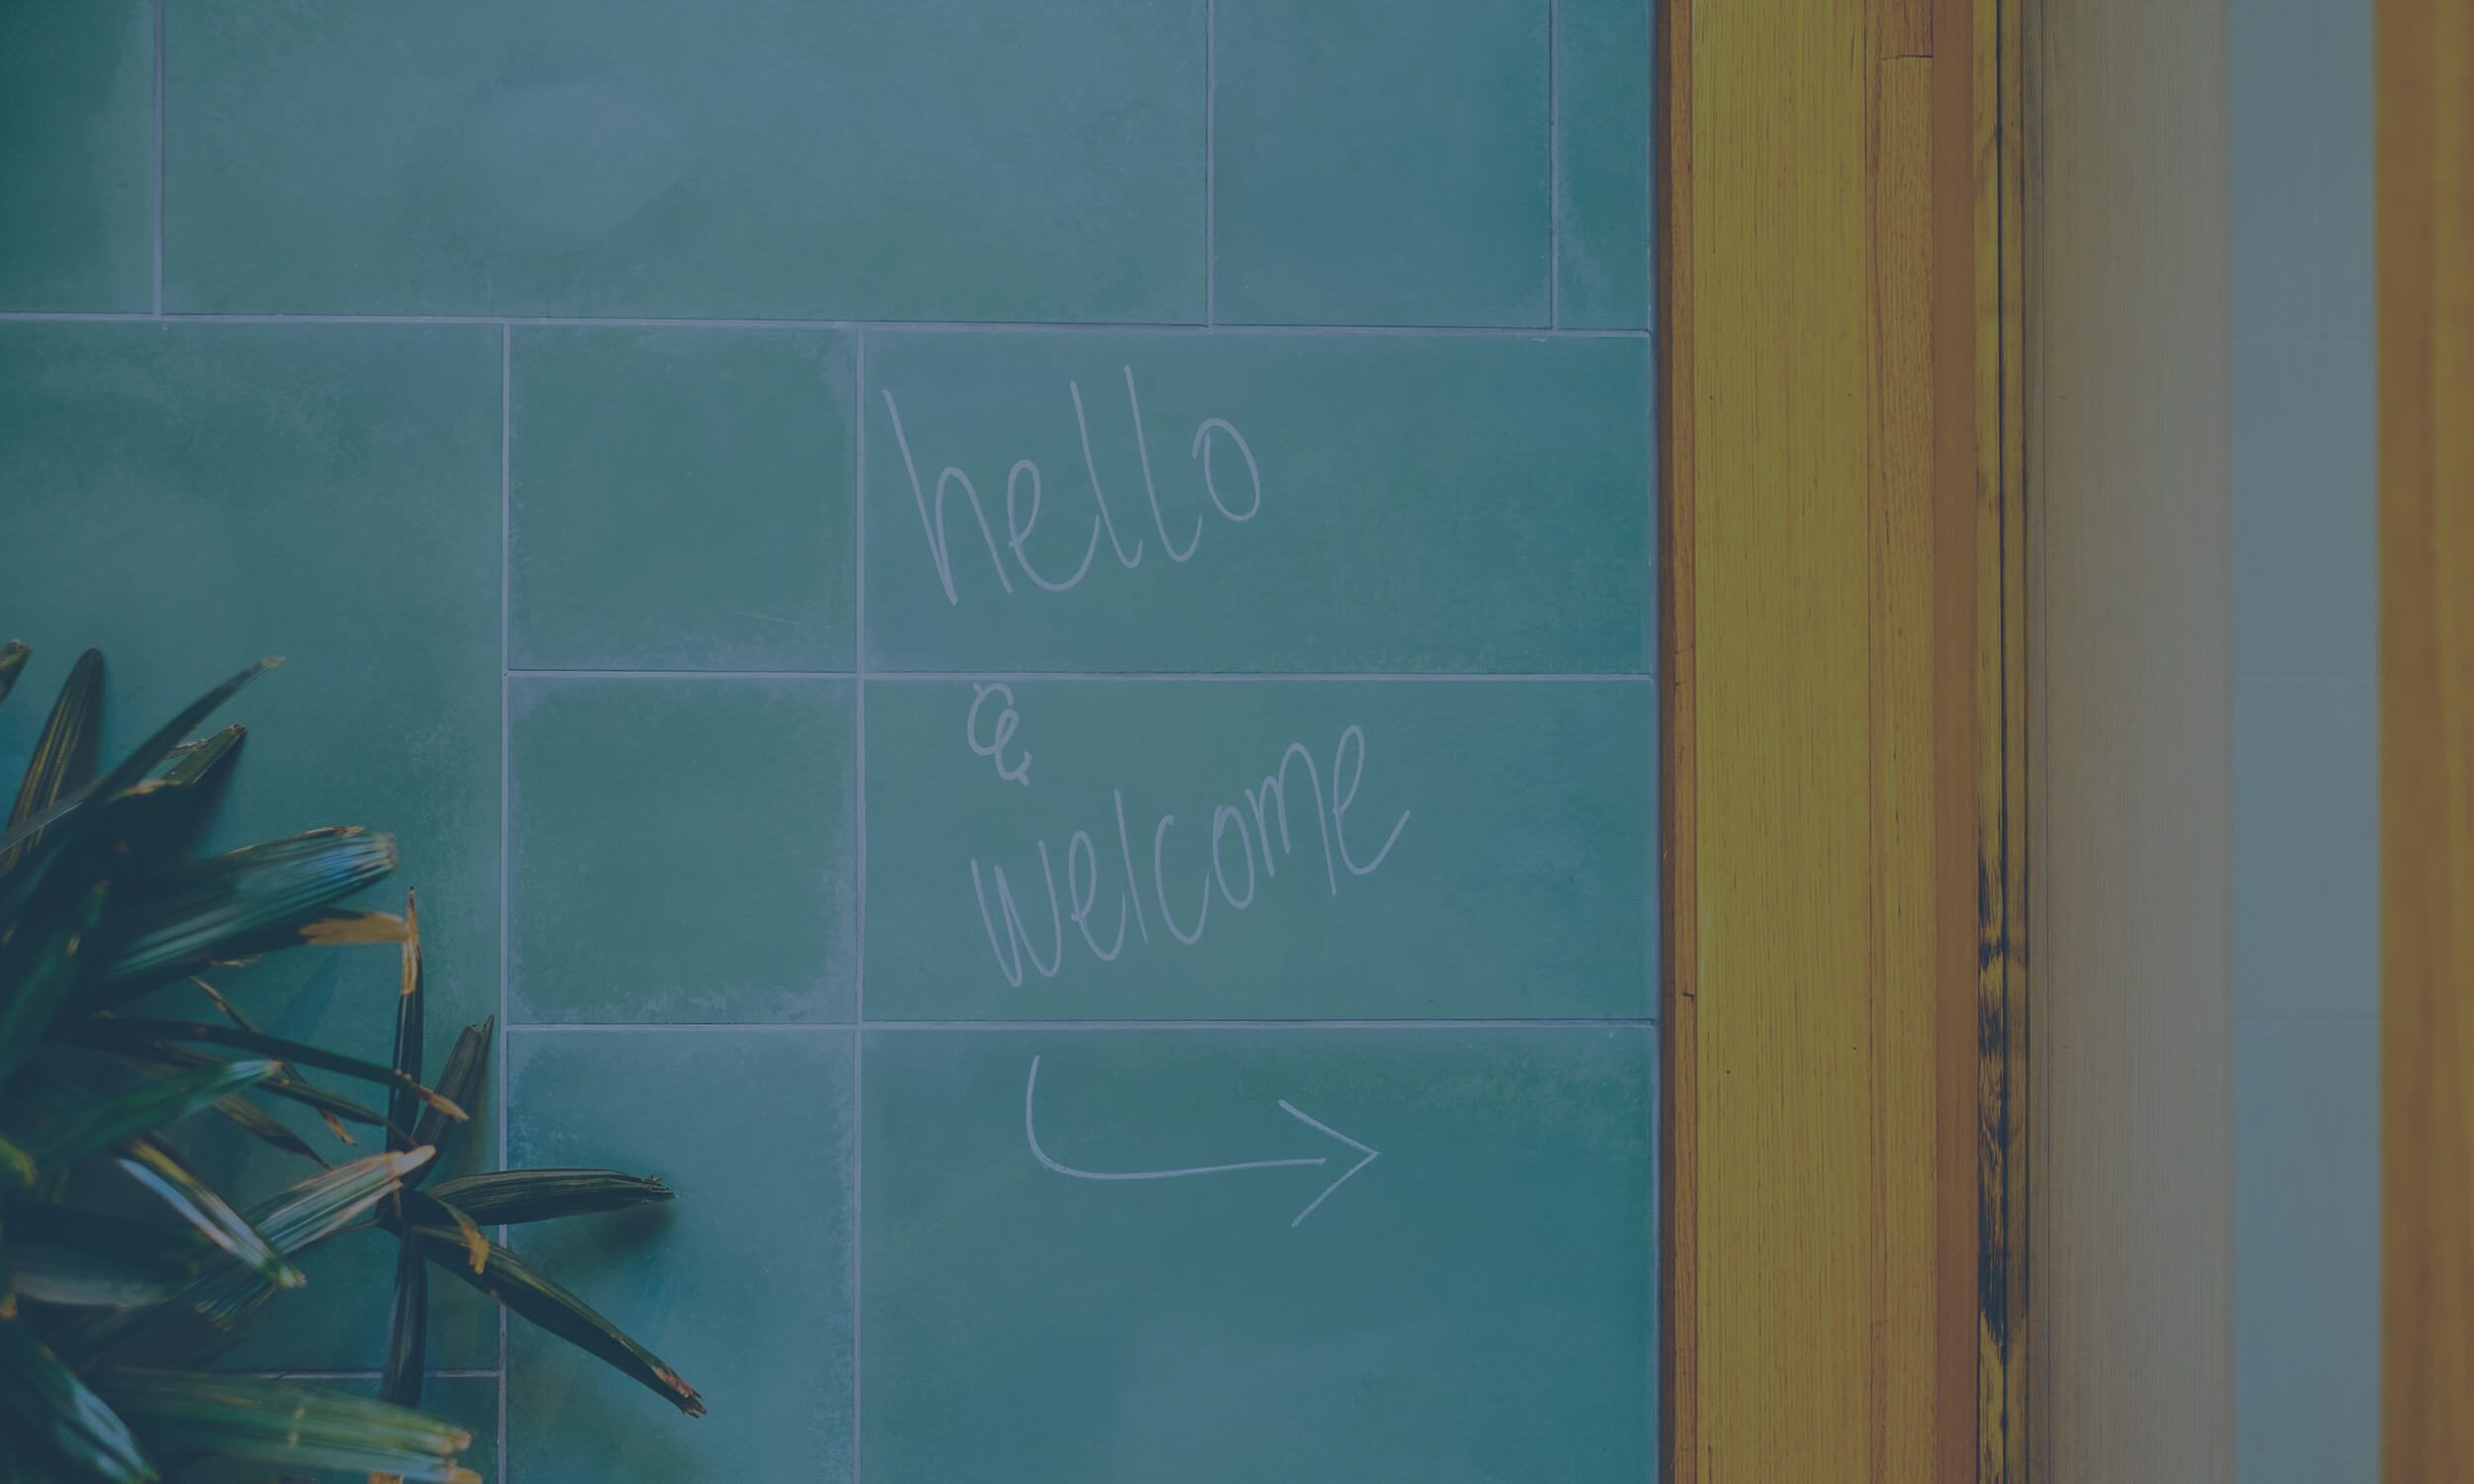 hello and welcome writing on office wall